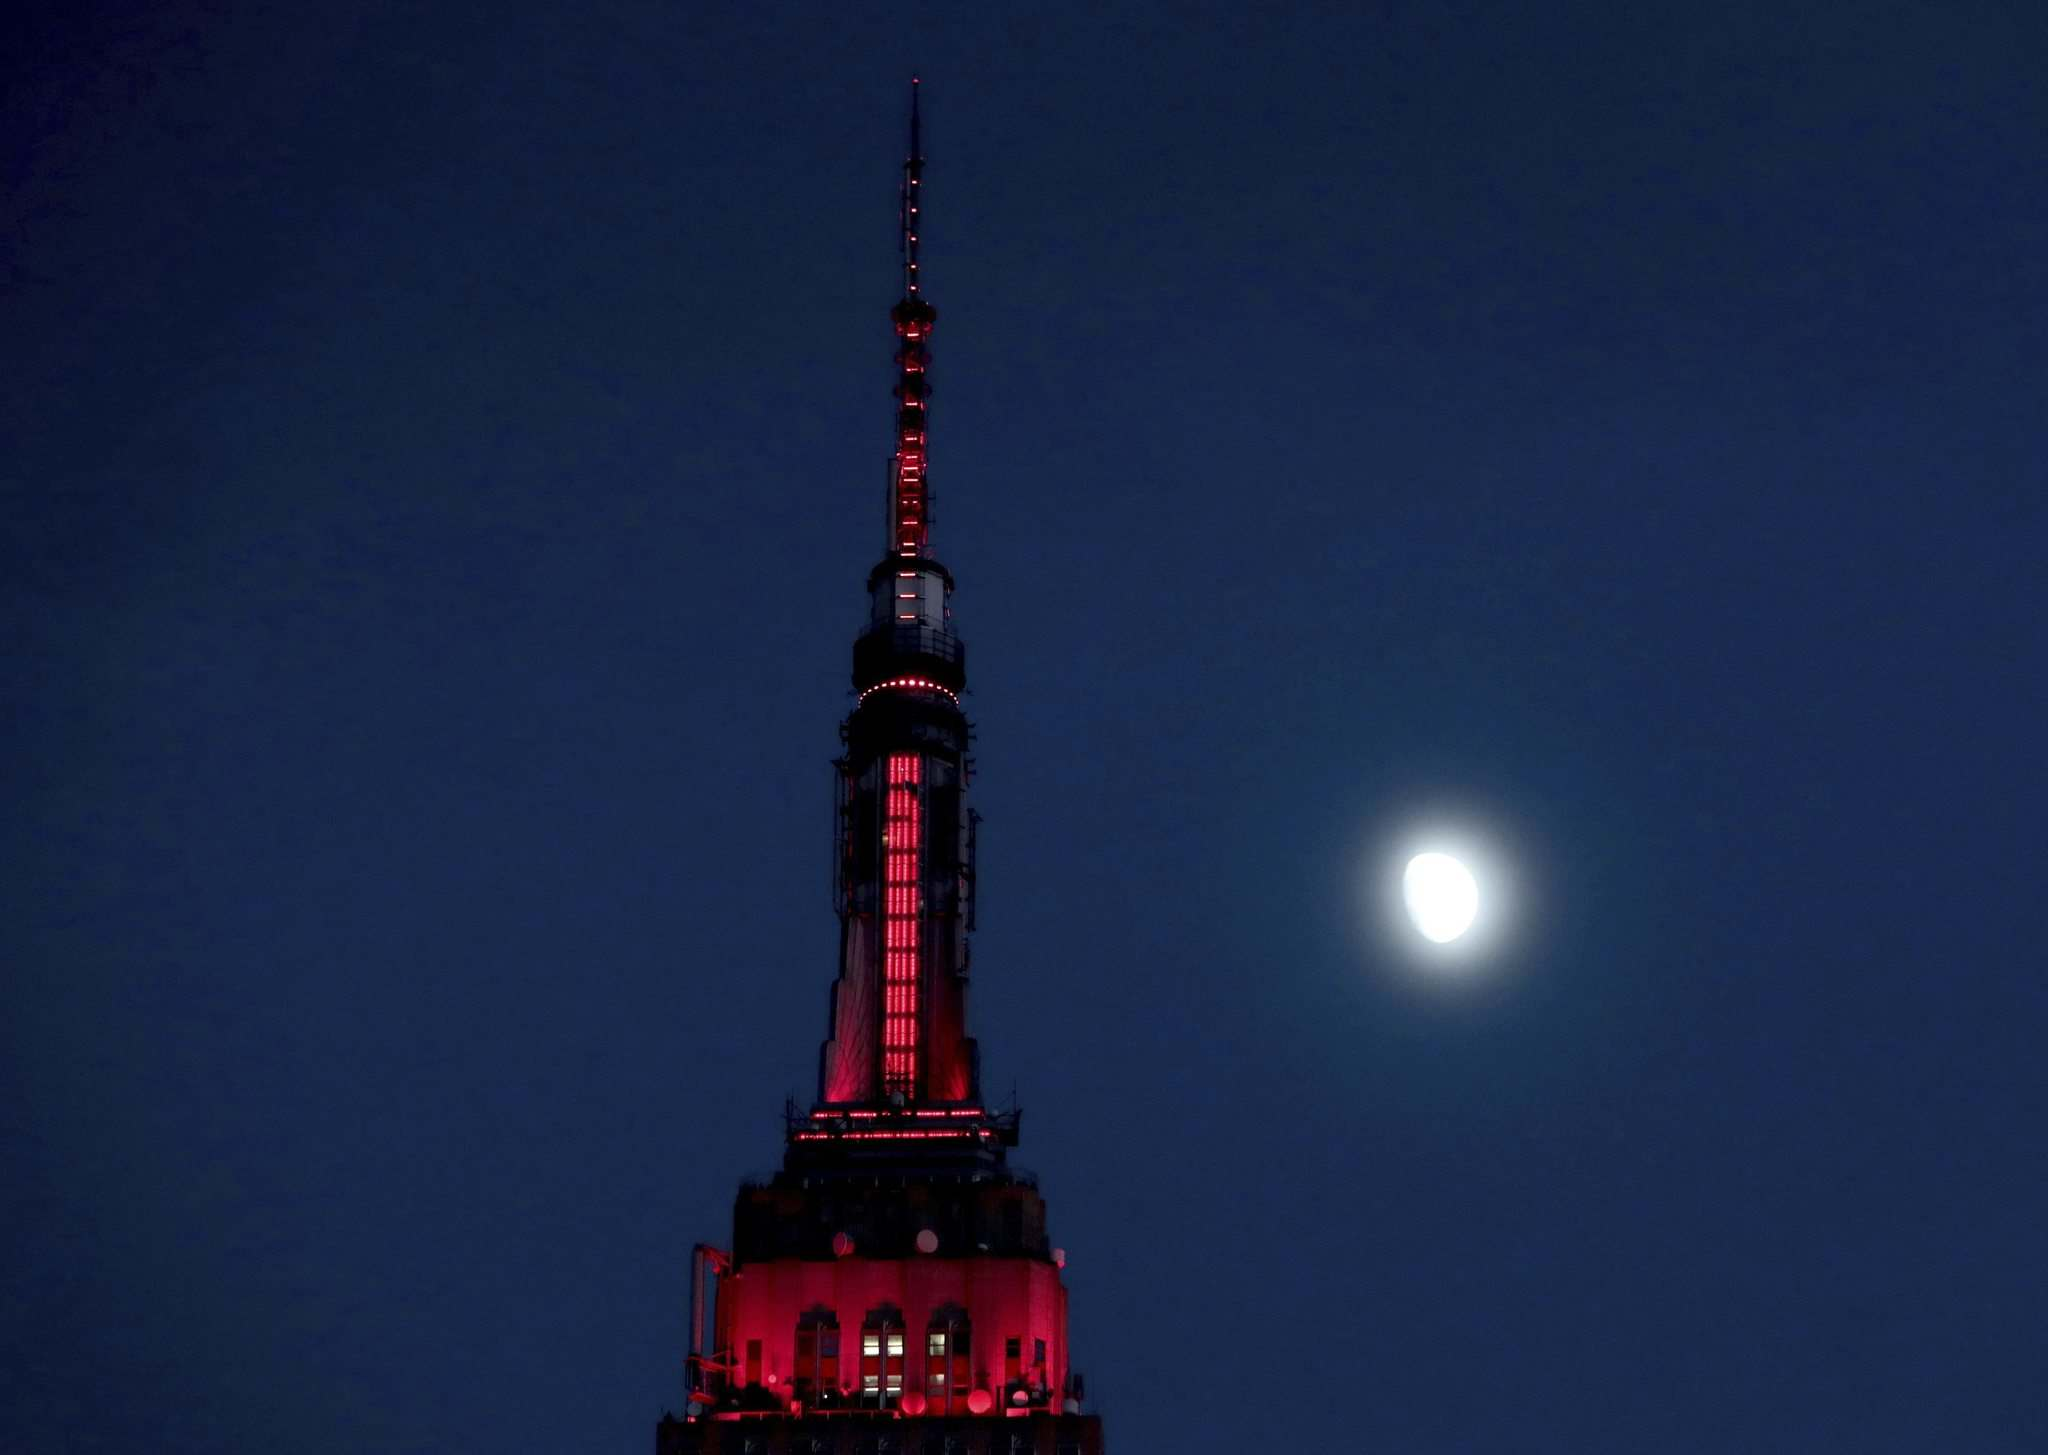 Julio Cortez, File / The Associated Press</p><p>FILE - In this Thursday, Nov. 10, 2016, file photo, the moon is seen in its waxing gibbous stage as it rises near the Empire State Building, in New York. On Wednesday, Feb. 15, 2017, the Federal Reserve Bank of New York issues its Empire State manufacturing index for February.</p>